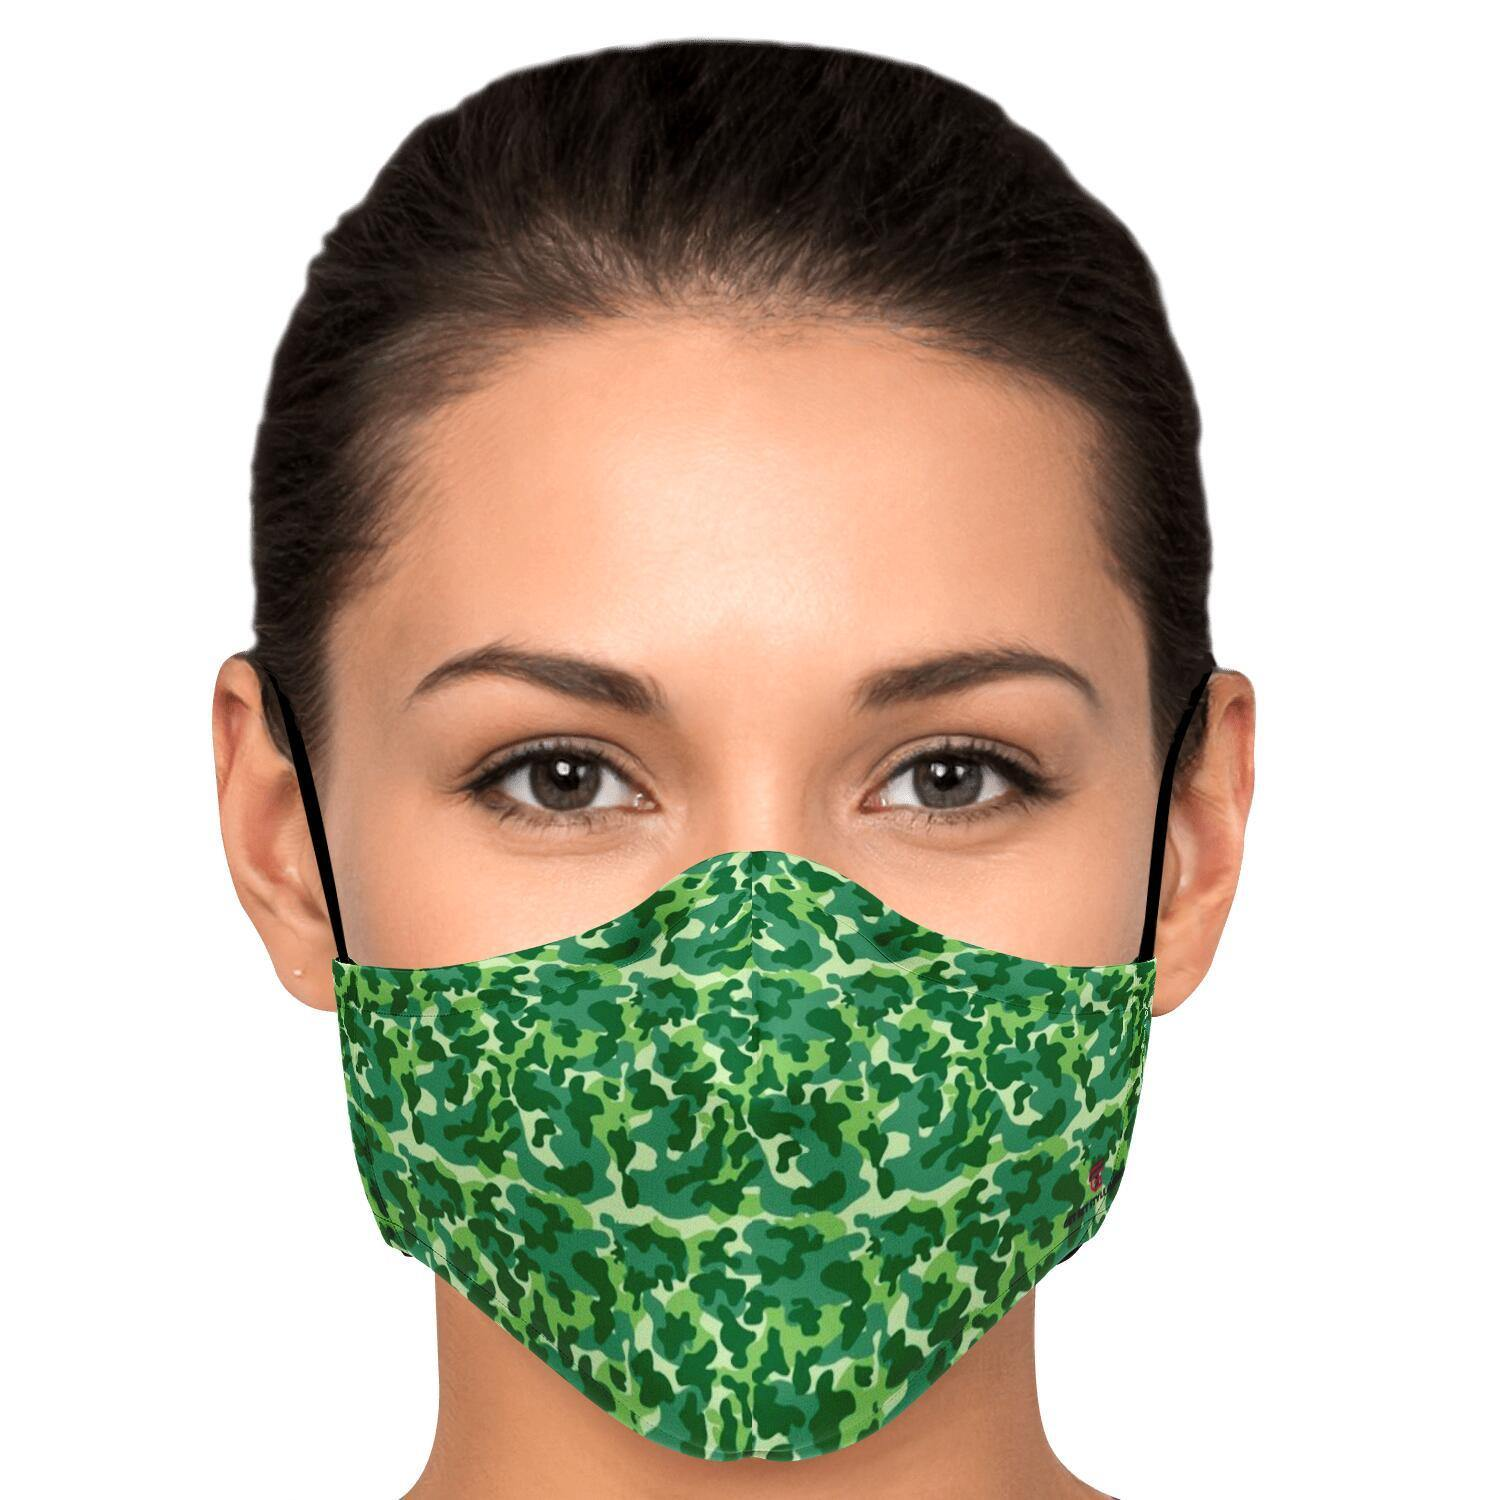 Green Camouflage Fashion Face Mask With PM2.5 Carbon Filter - Get Set Style Metro